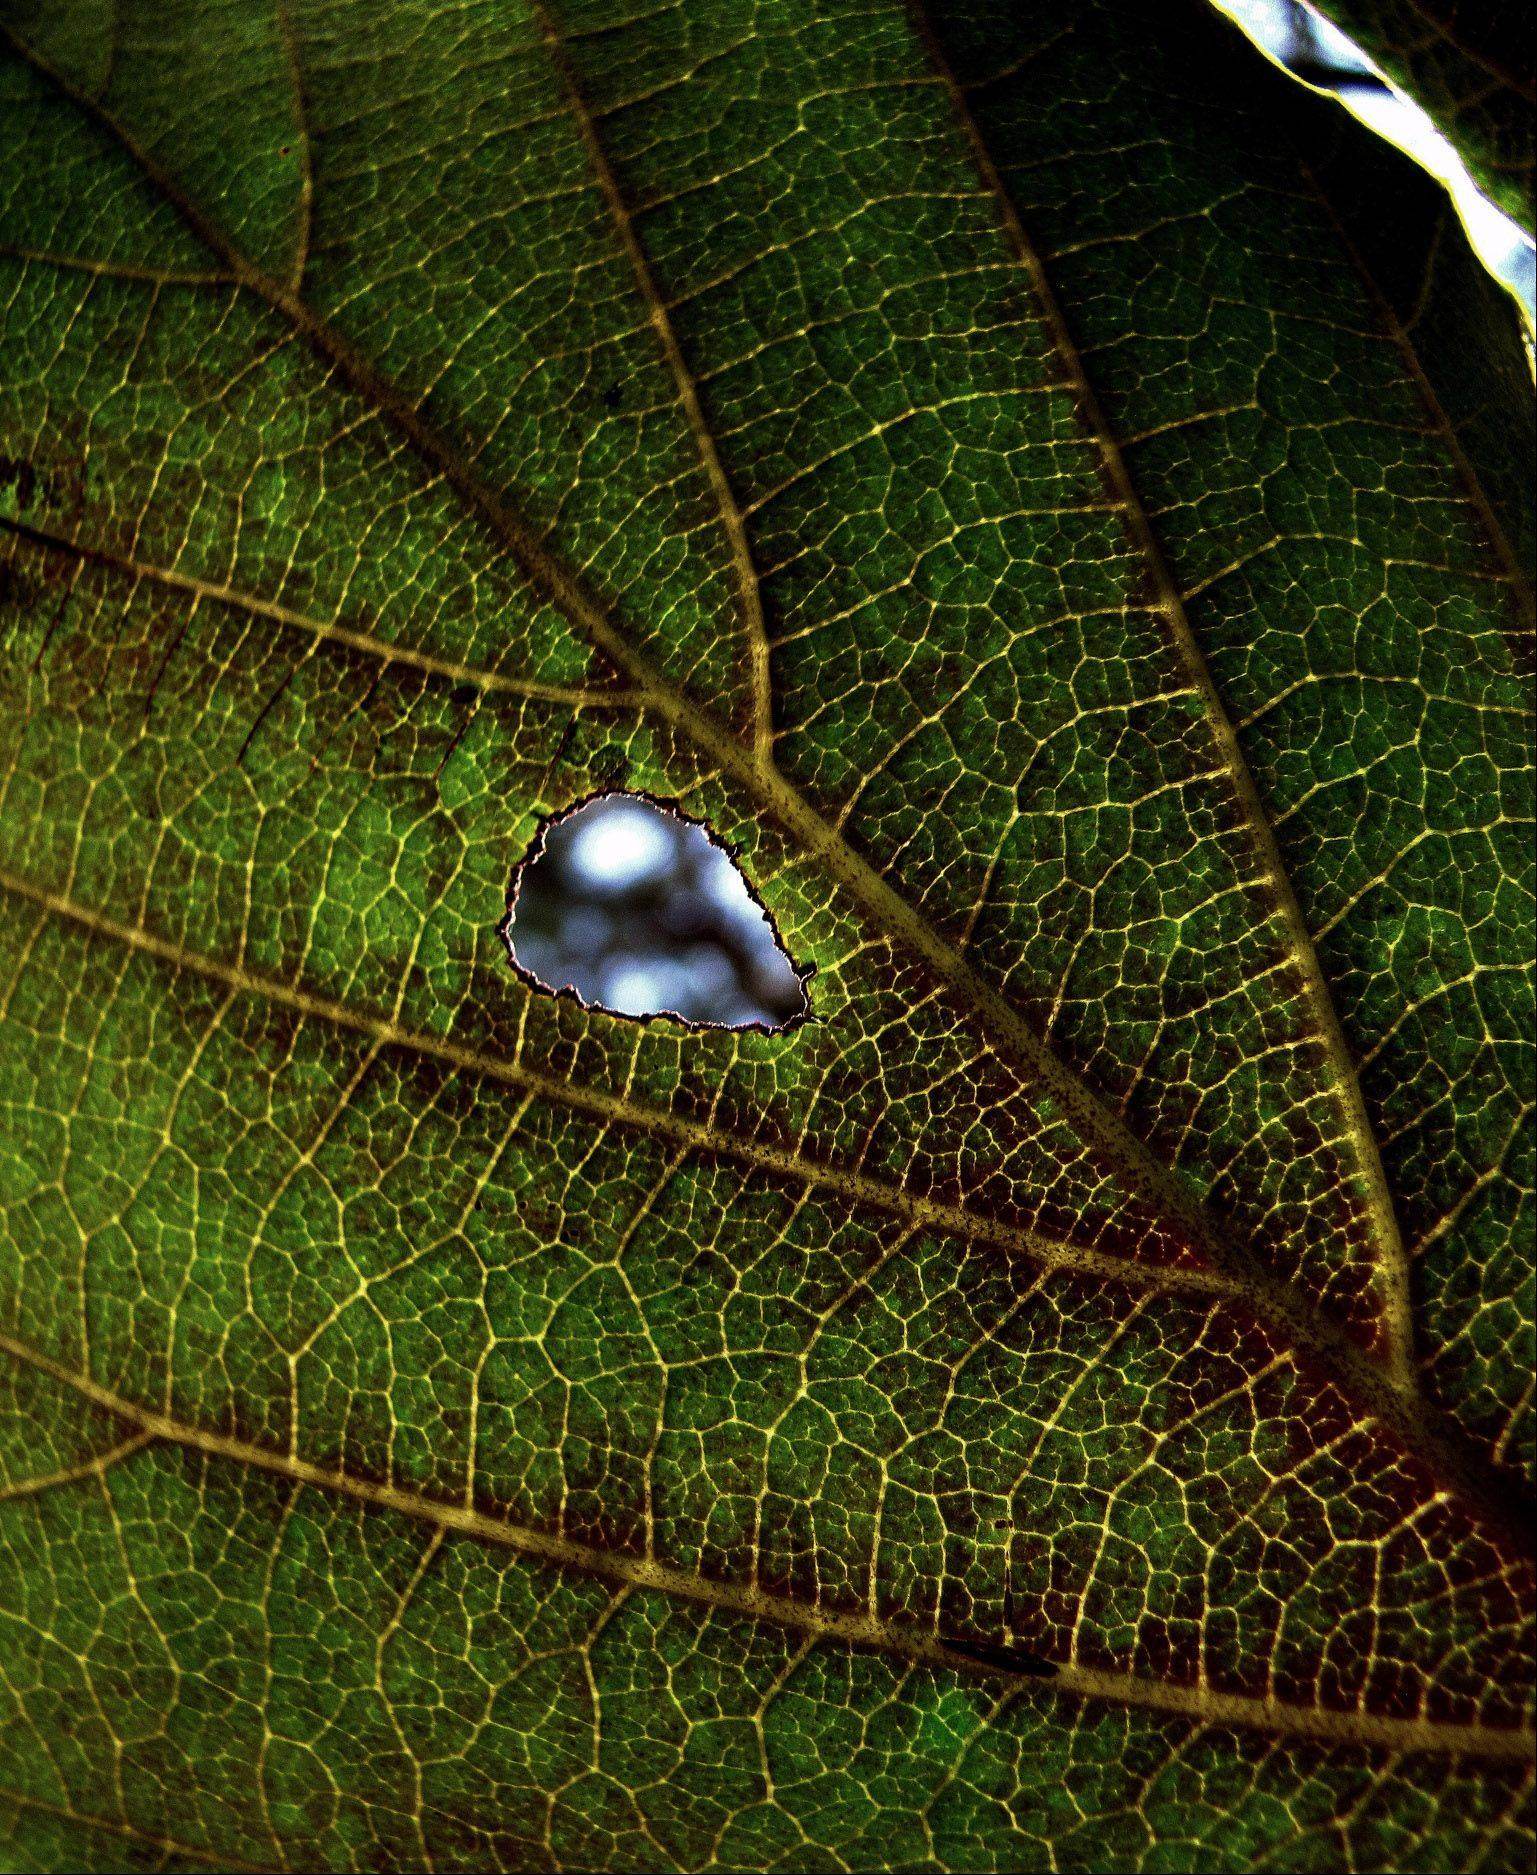 I am always amazed at the intricate details and beauty of the smallest things. This photo of a bug chewed leaf was taken at the Chicago Botanic Garden.